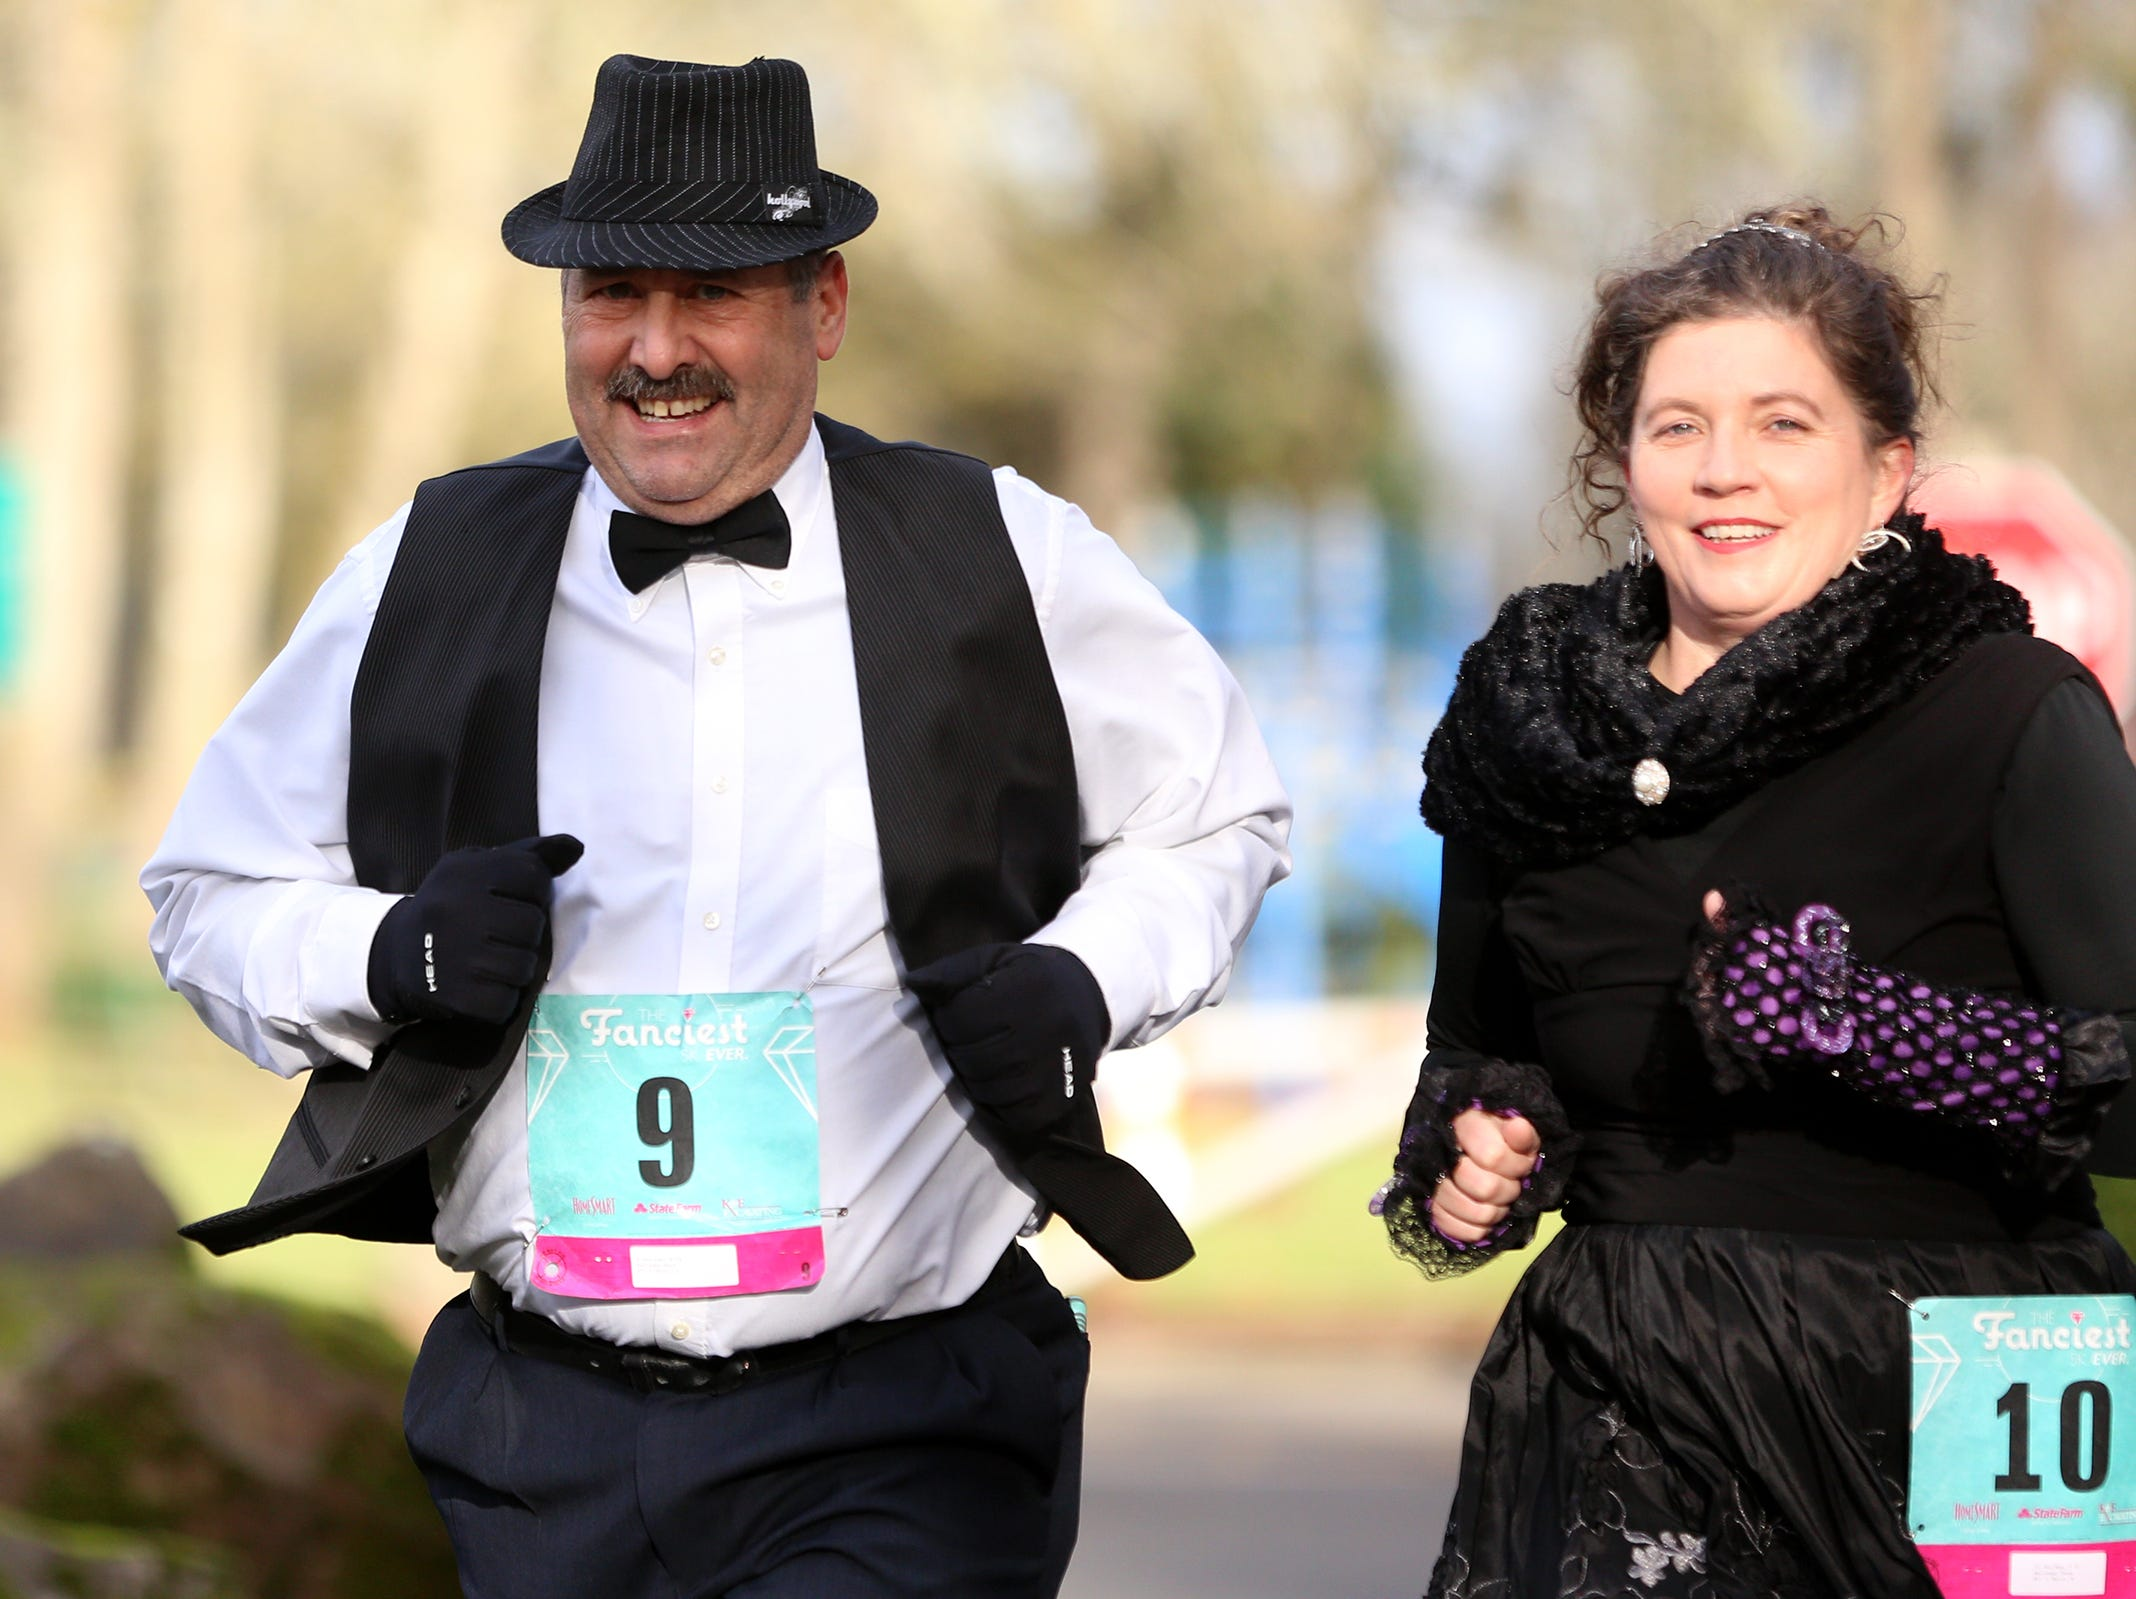 Runners dress in formal wear during The Fanciest 5K. Ever. in Salem on Saturday, Dec. 29. All of the money raised will go directly to advocacy for sex-trafficking survivors in the mid-Willamette Valley.